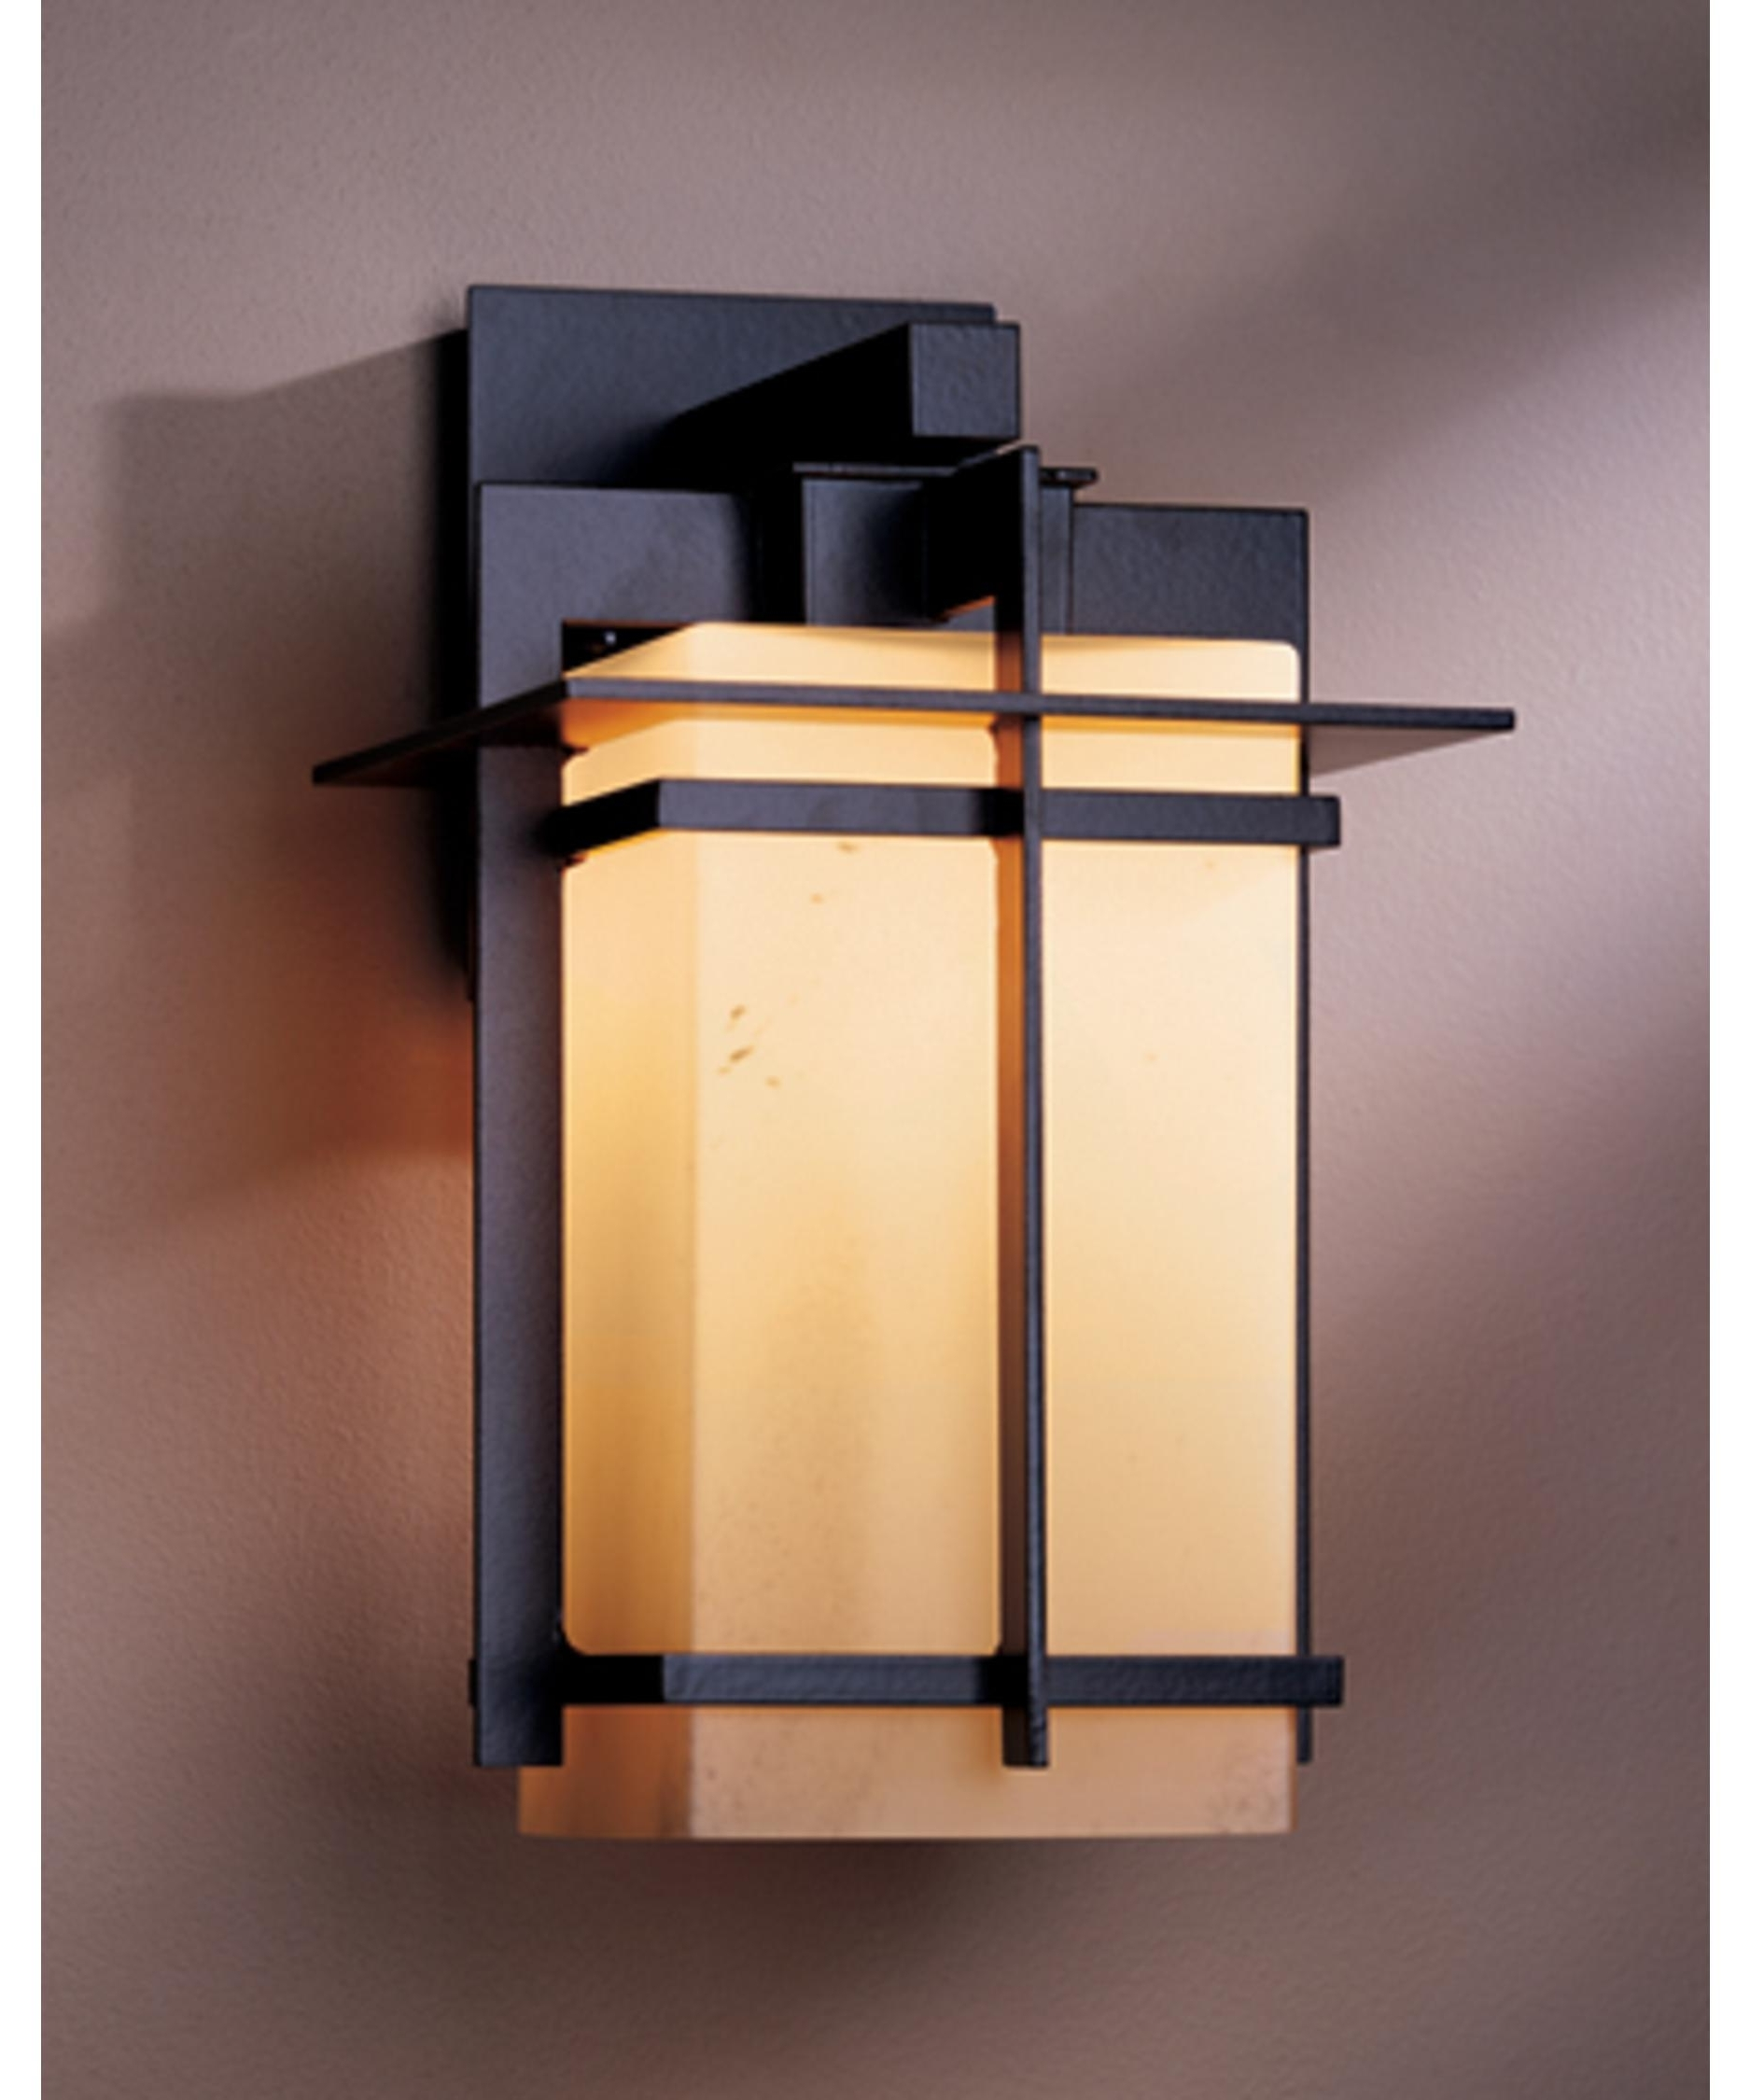 how determine matters house sconces to for wall outdoor fixtures lantern one fixture modern featured proportion sconce light size day penfield